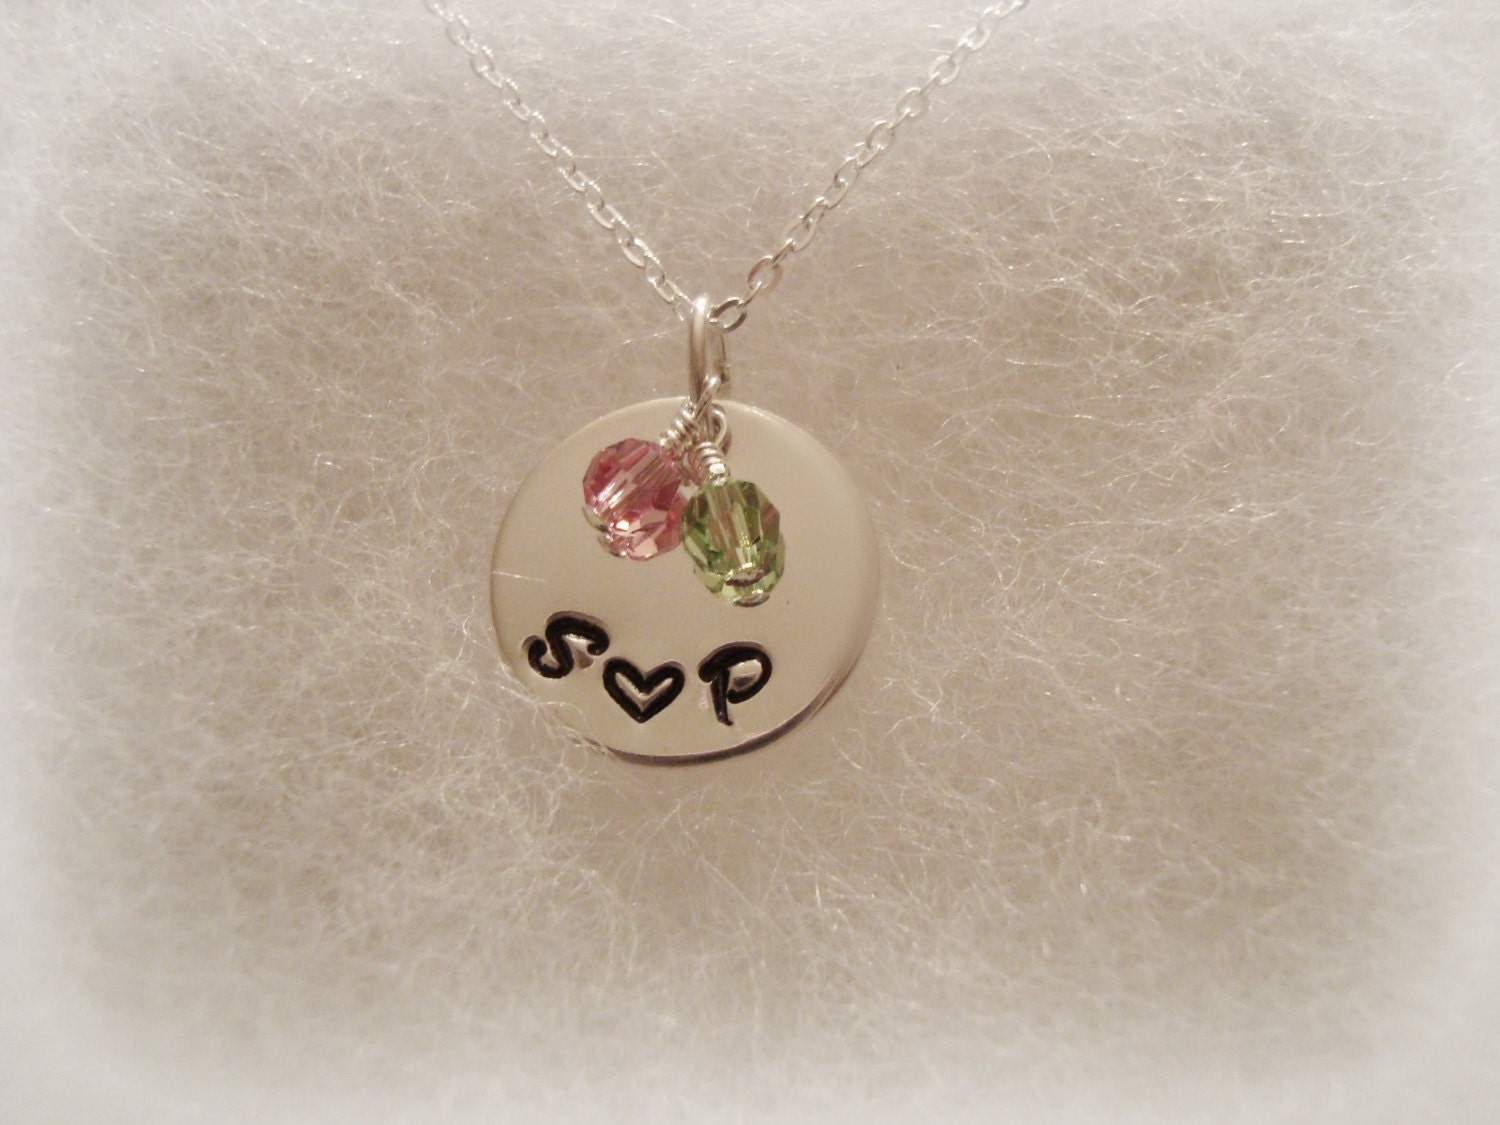 Sterling Silver Hand Stamped Initials and Heart Necklace with Swarovski Crystals